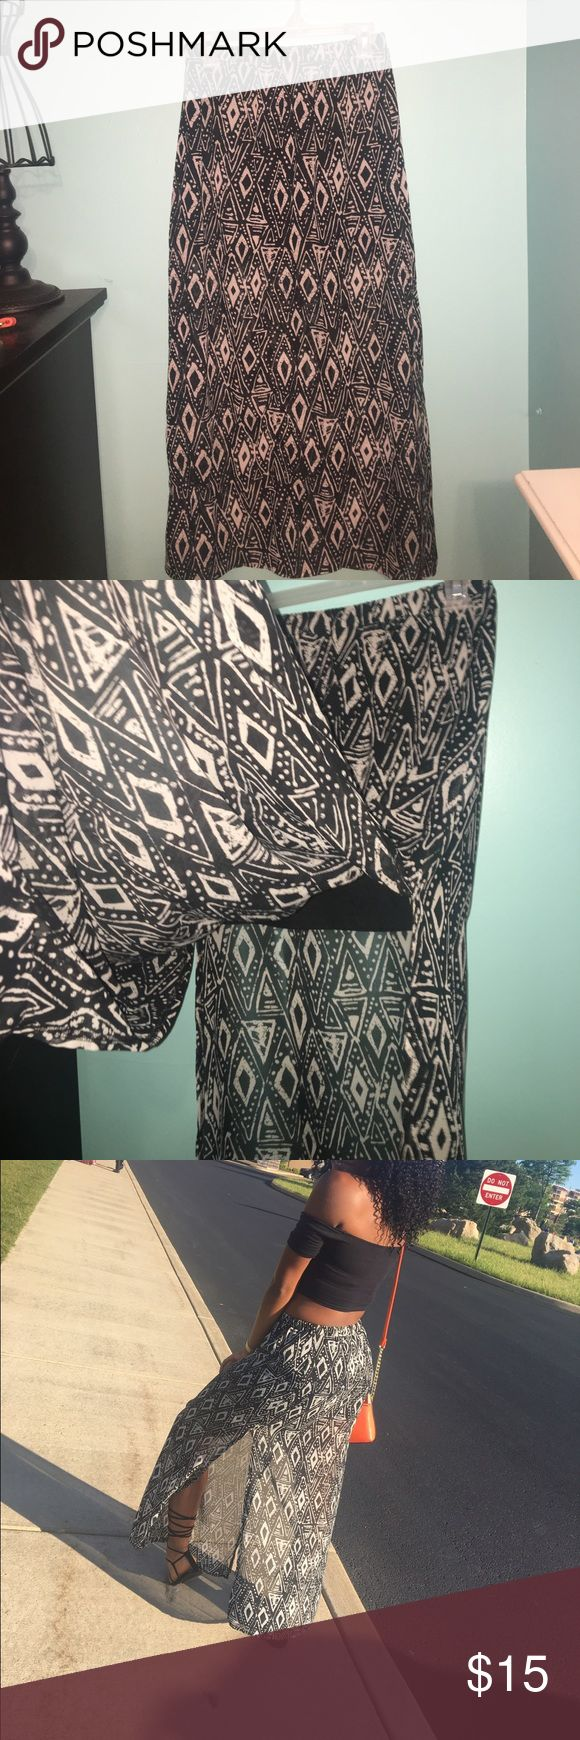 Tribal Maxi skirt Black and grey maxi skirt. Has two slits on the side and a black mini slip underneath. Very cute skirt Forever 21 Skirts Maxi